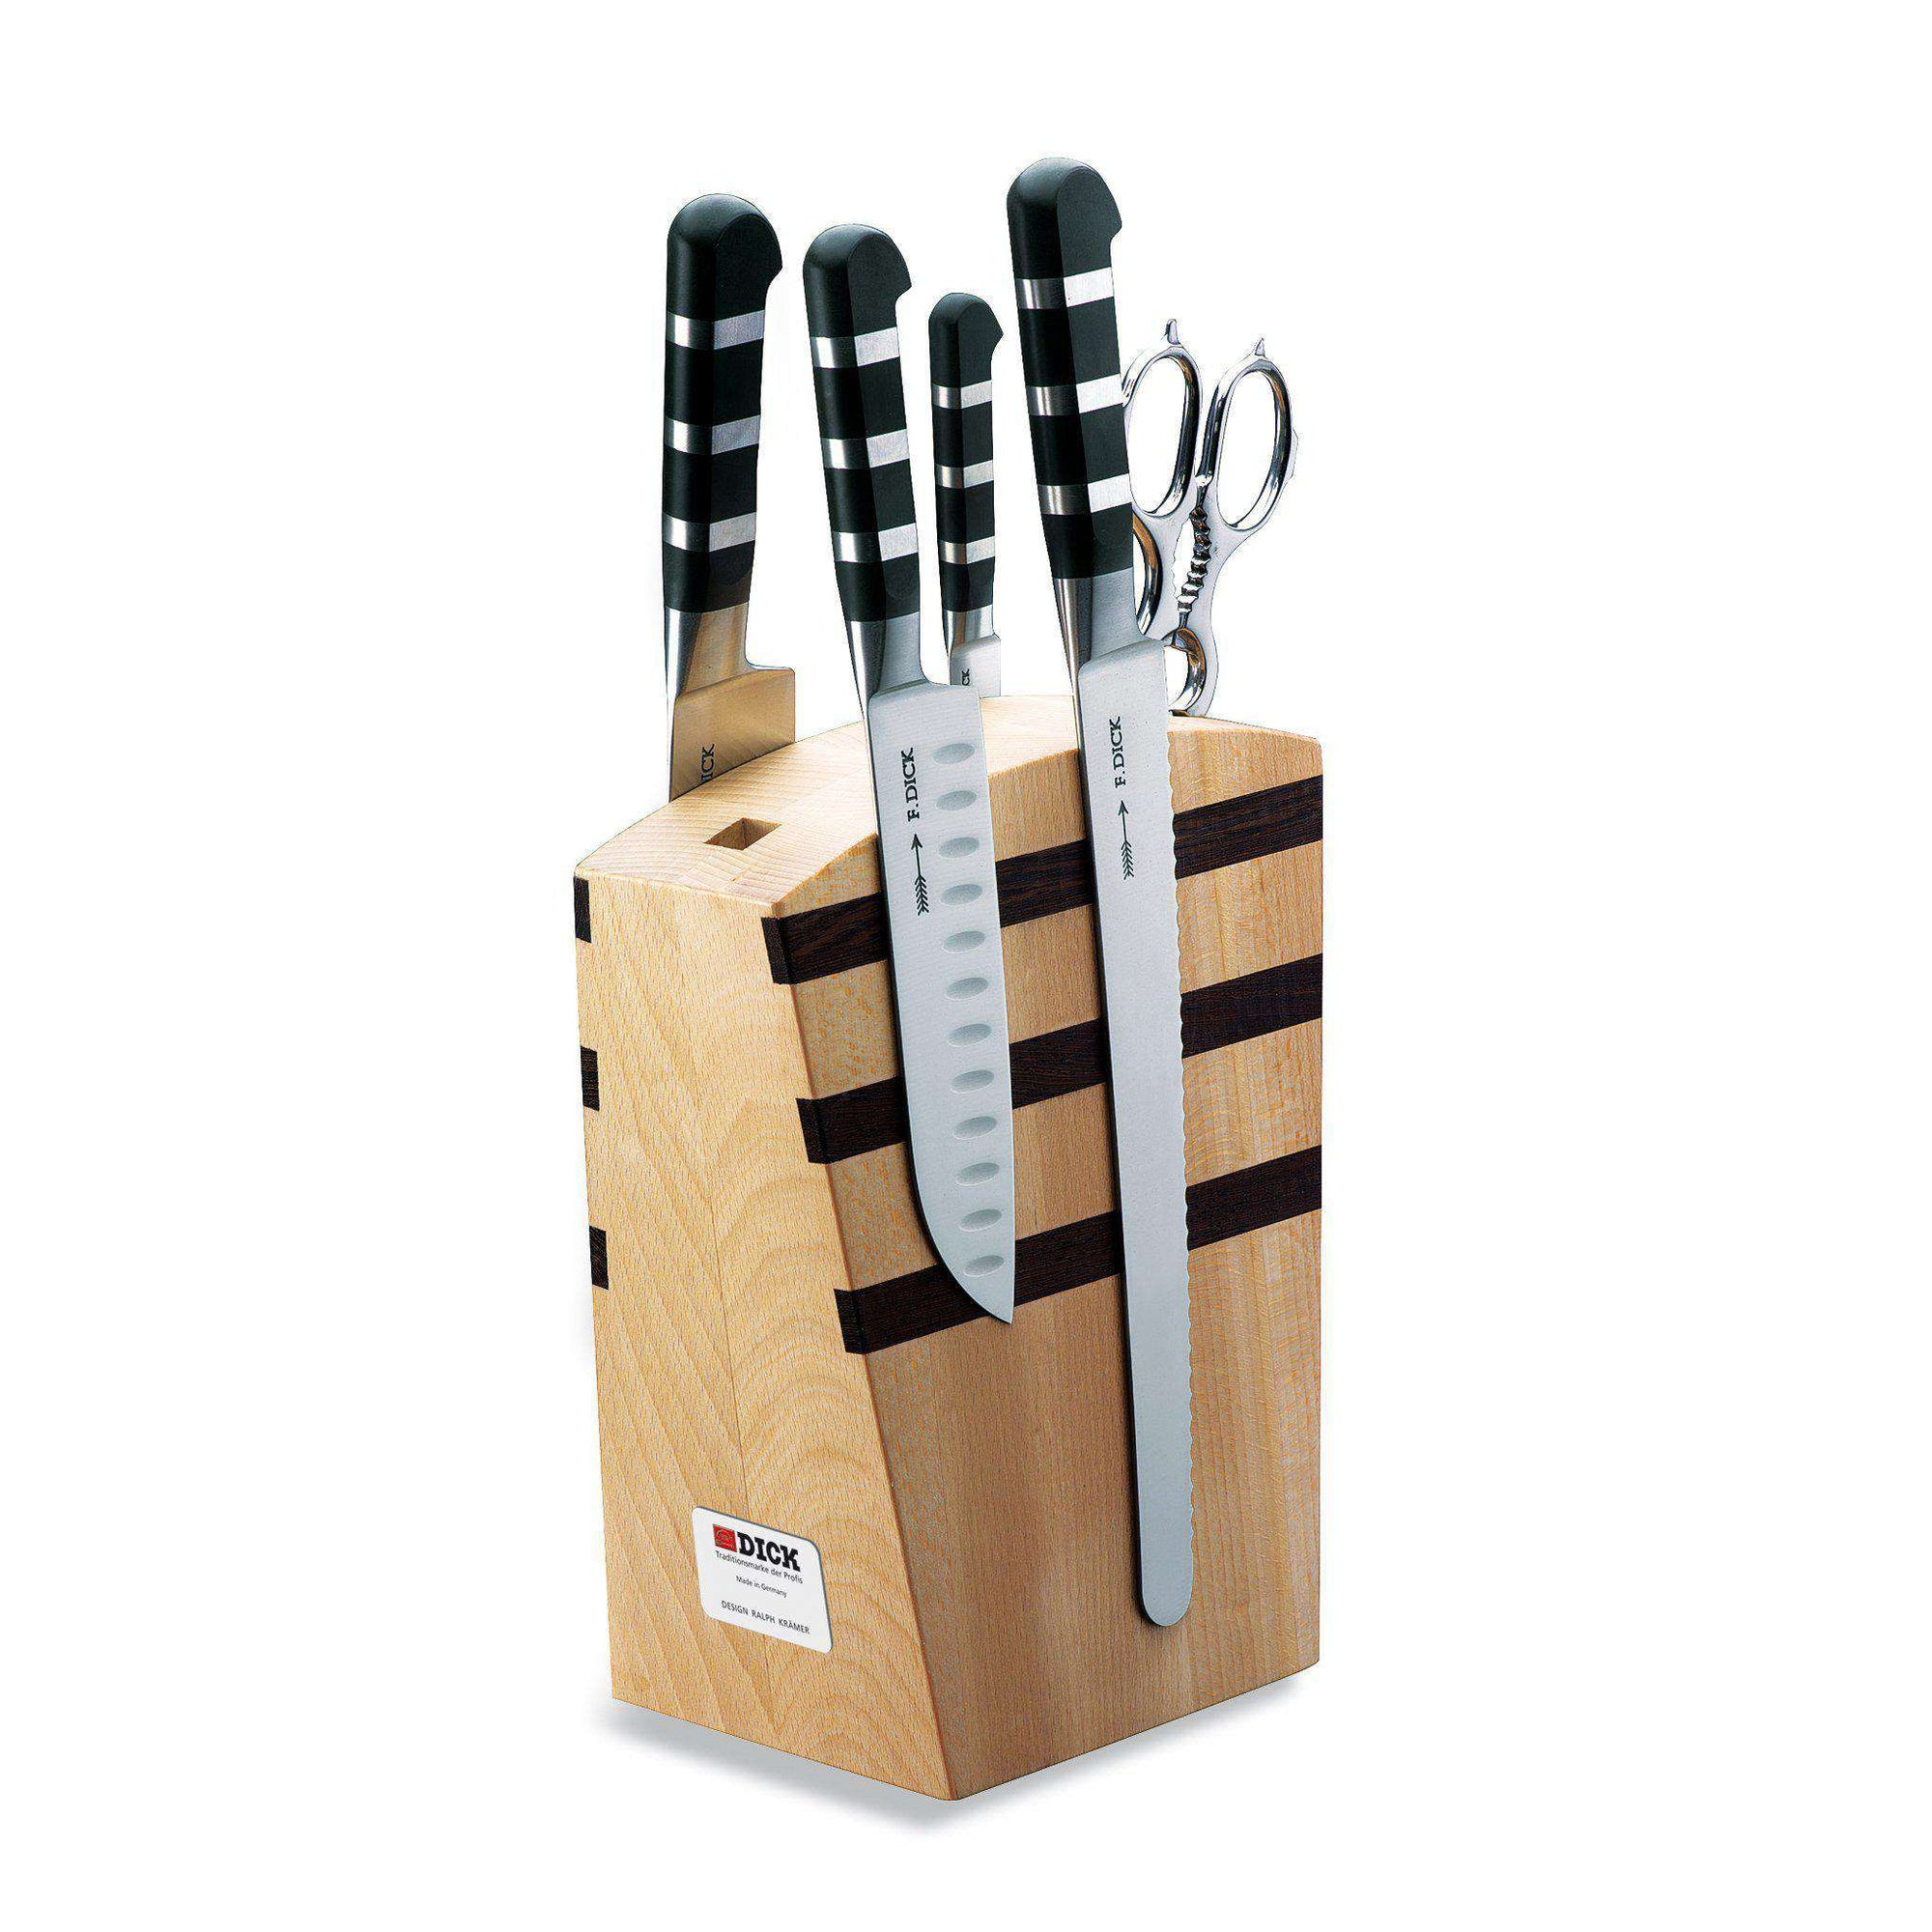 F. DICK 1905 Series Magnetic Wooden Knife Block 5 Pc Set - House of Knives